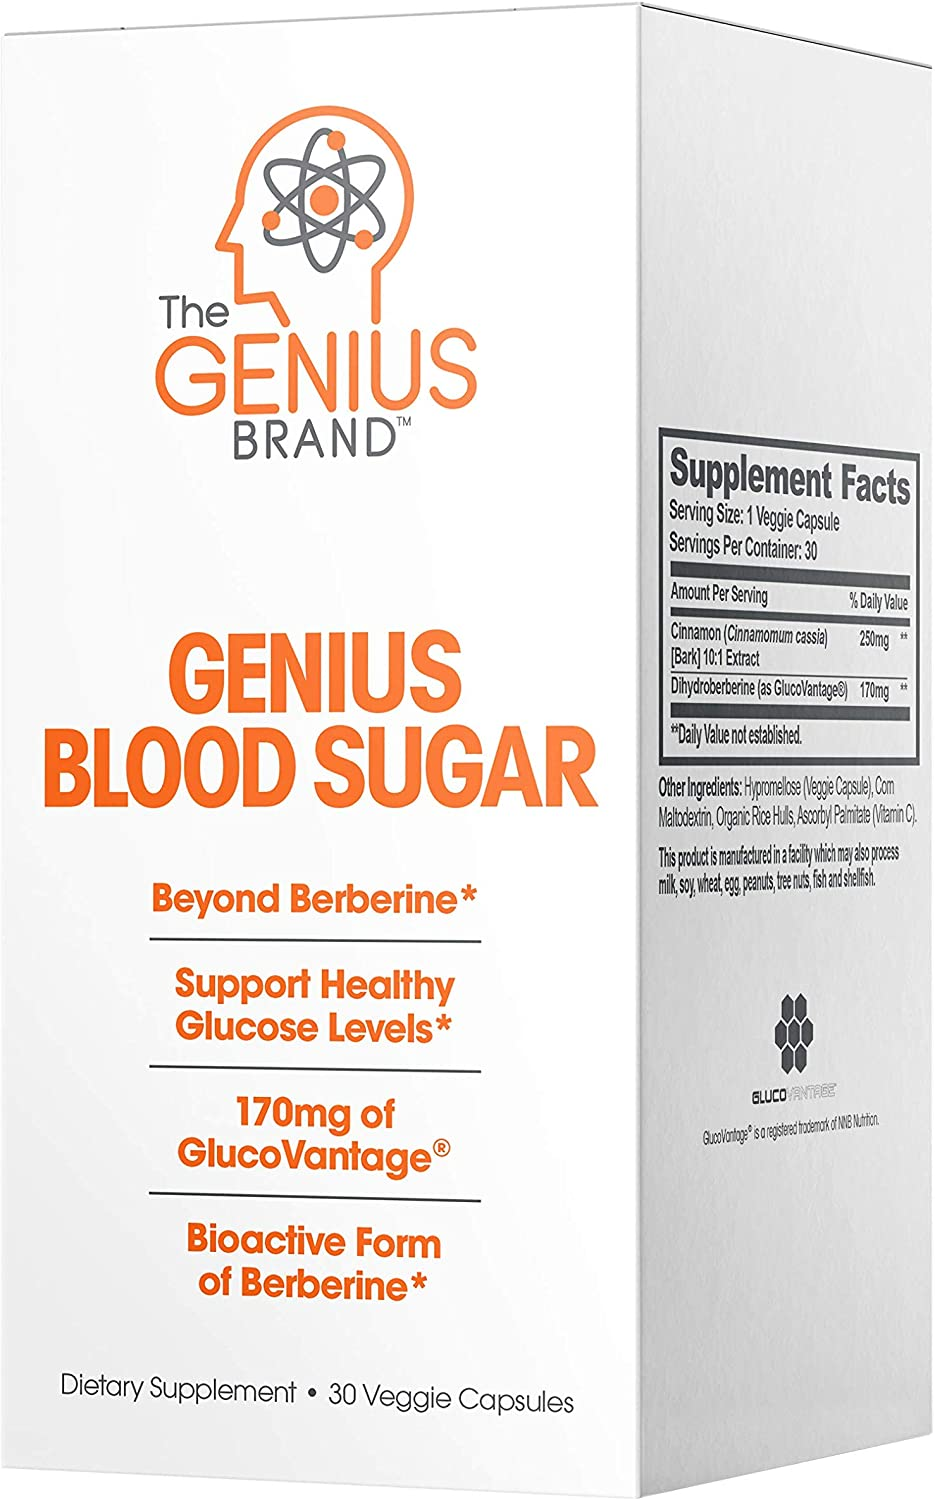 Genius Blood Sugar Support Capsules - Super Berberine Extract w/Organic Cassia Cinnamon for Better Insulin Sensitivity & Reduced Glucose | Keto Supplement 400MG (Berberine HCI + Cinnamon) 30 Pills